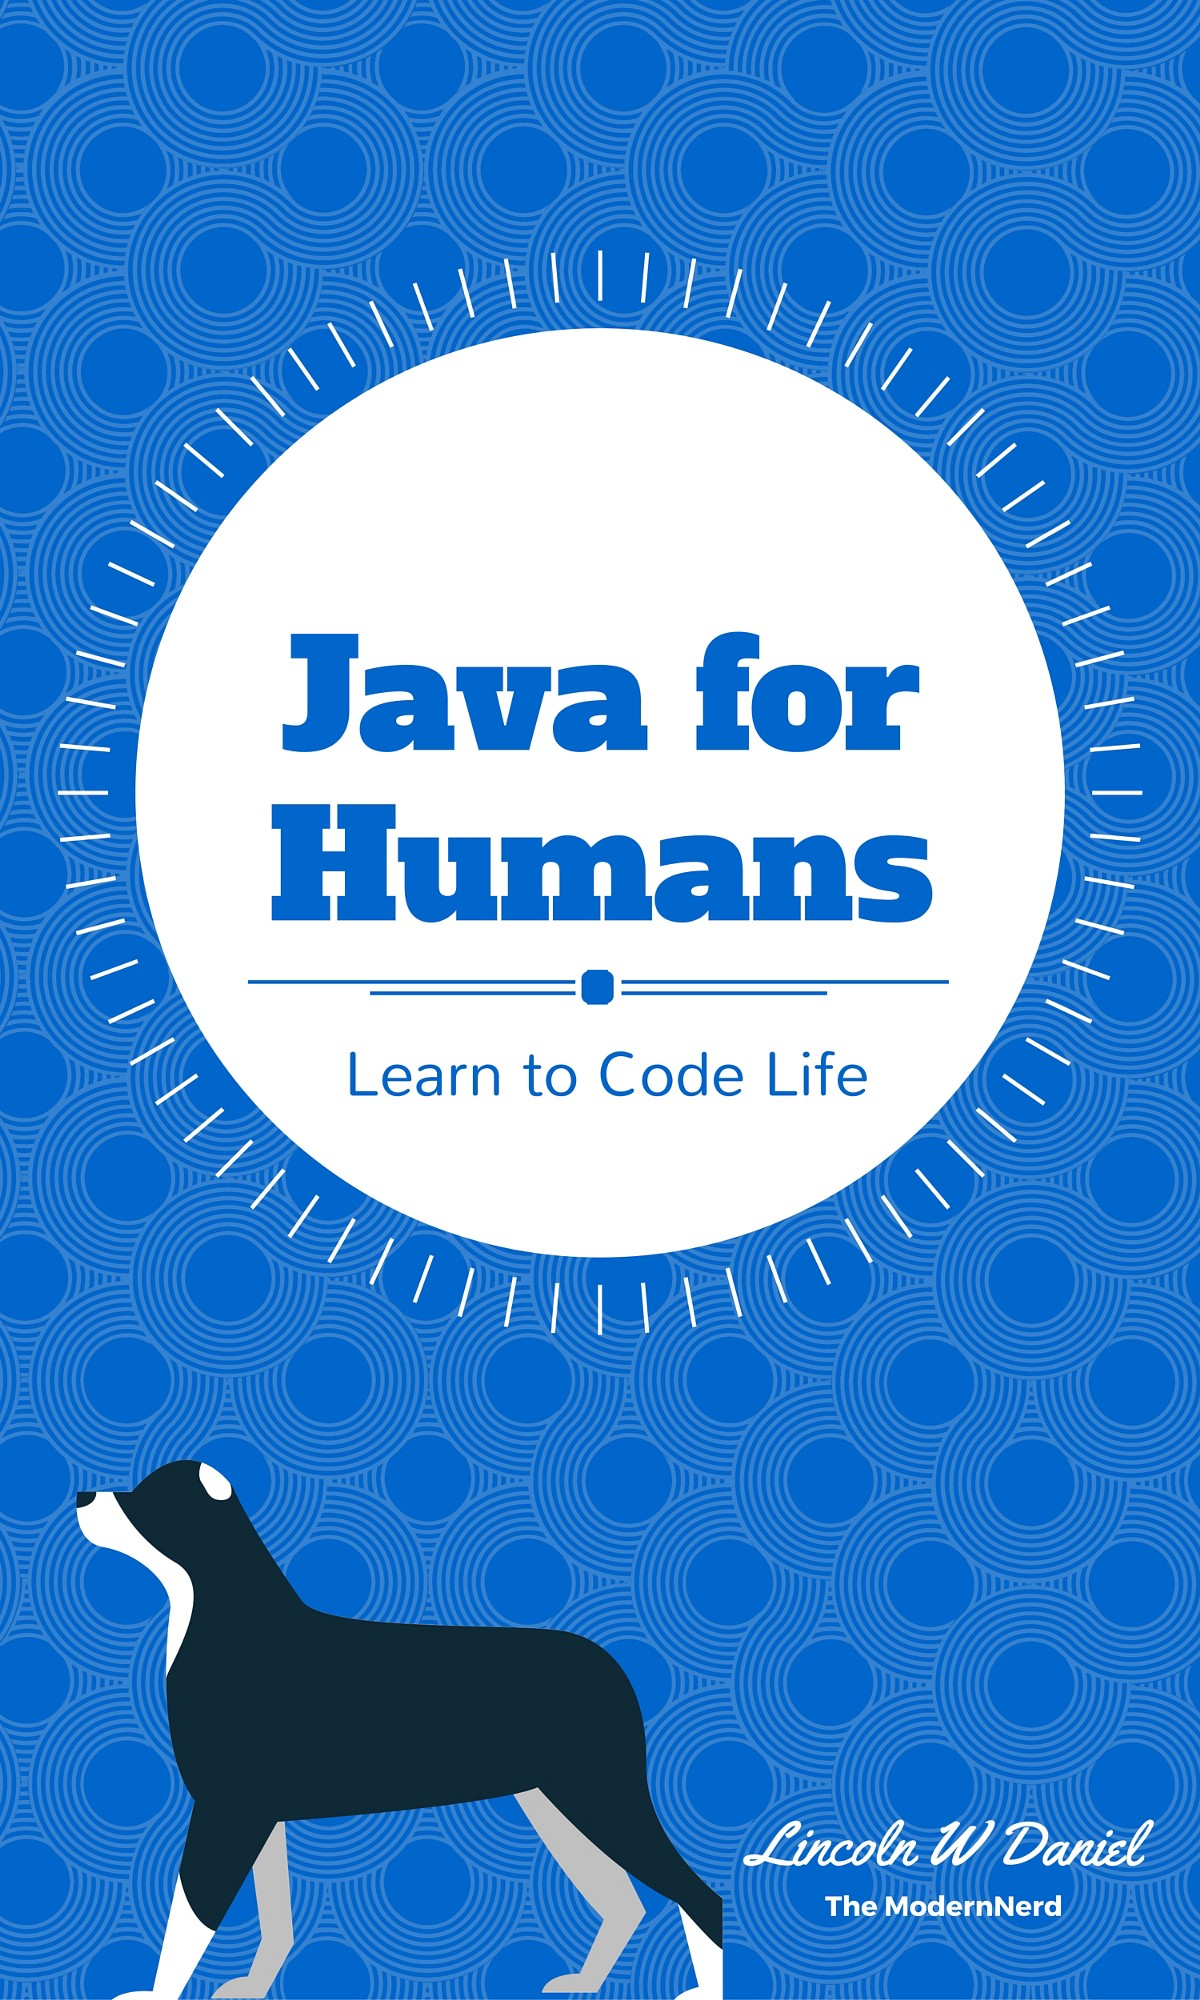 Java for humans beginners book is out modernnerd code medium i hope this helps people face their fear of coding and get started building the next big thing in the end we will build a little fighting game to apply baditri Gallery